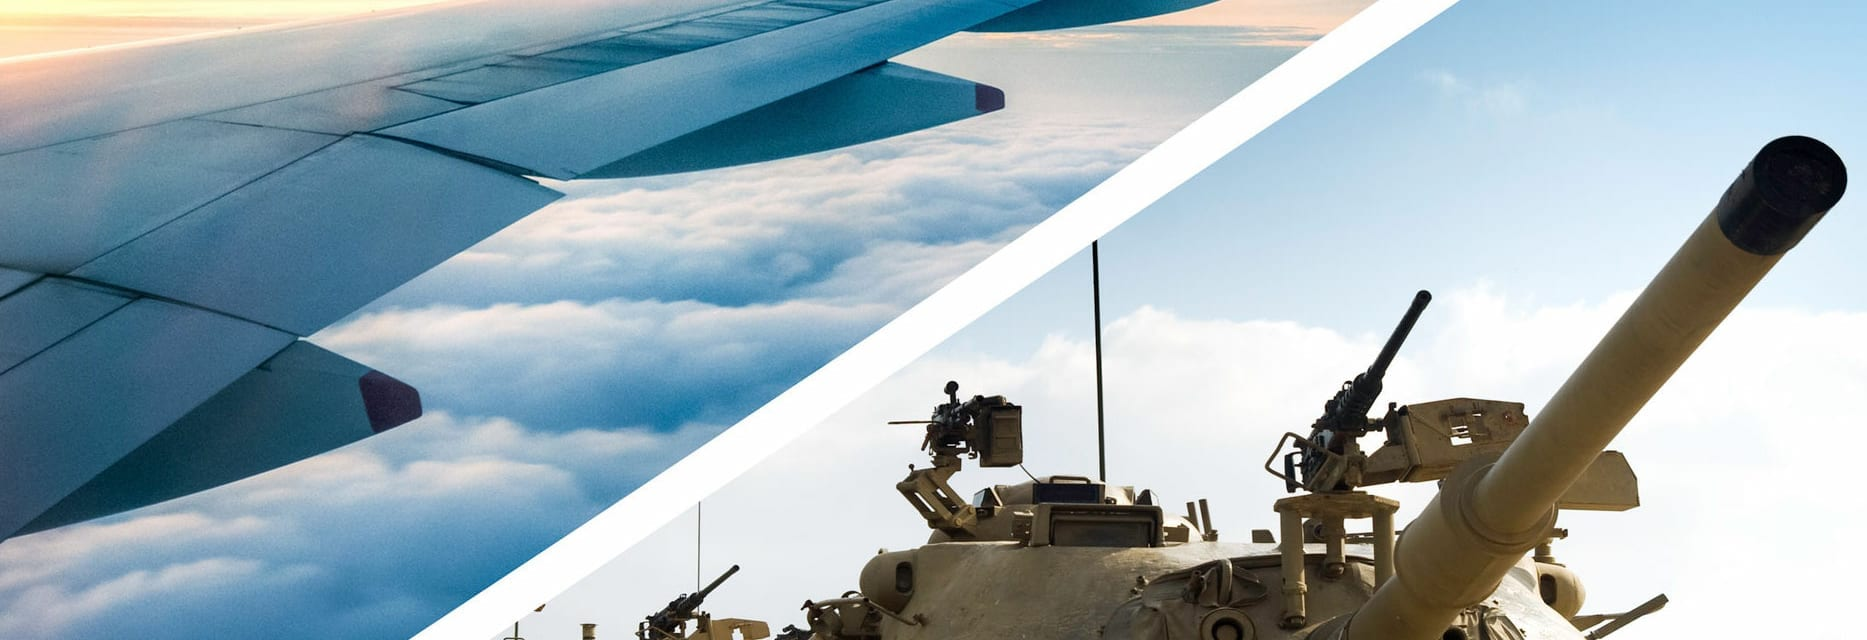 split image of airplane wing in clouds and tank barrel